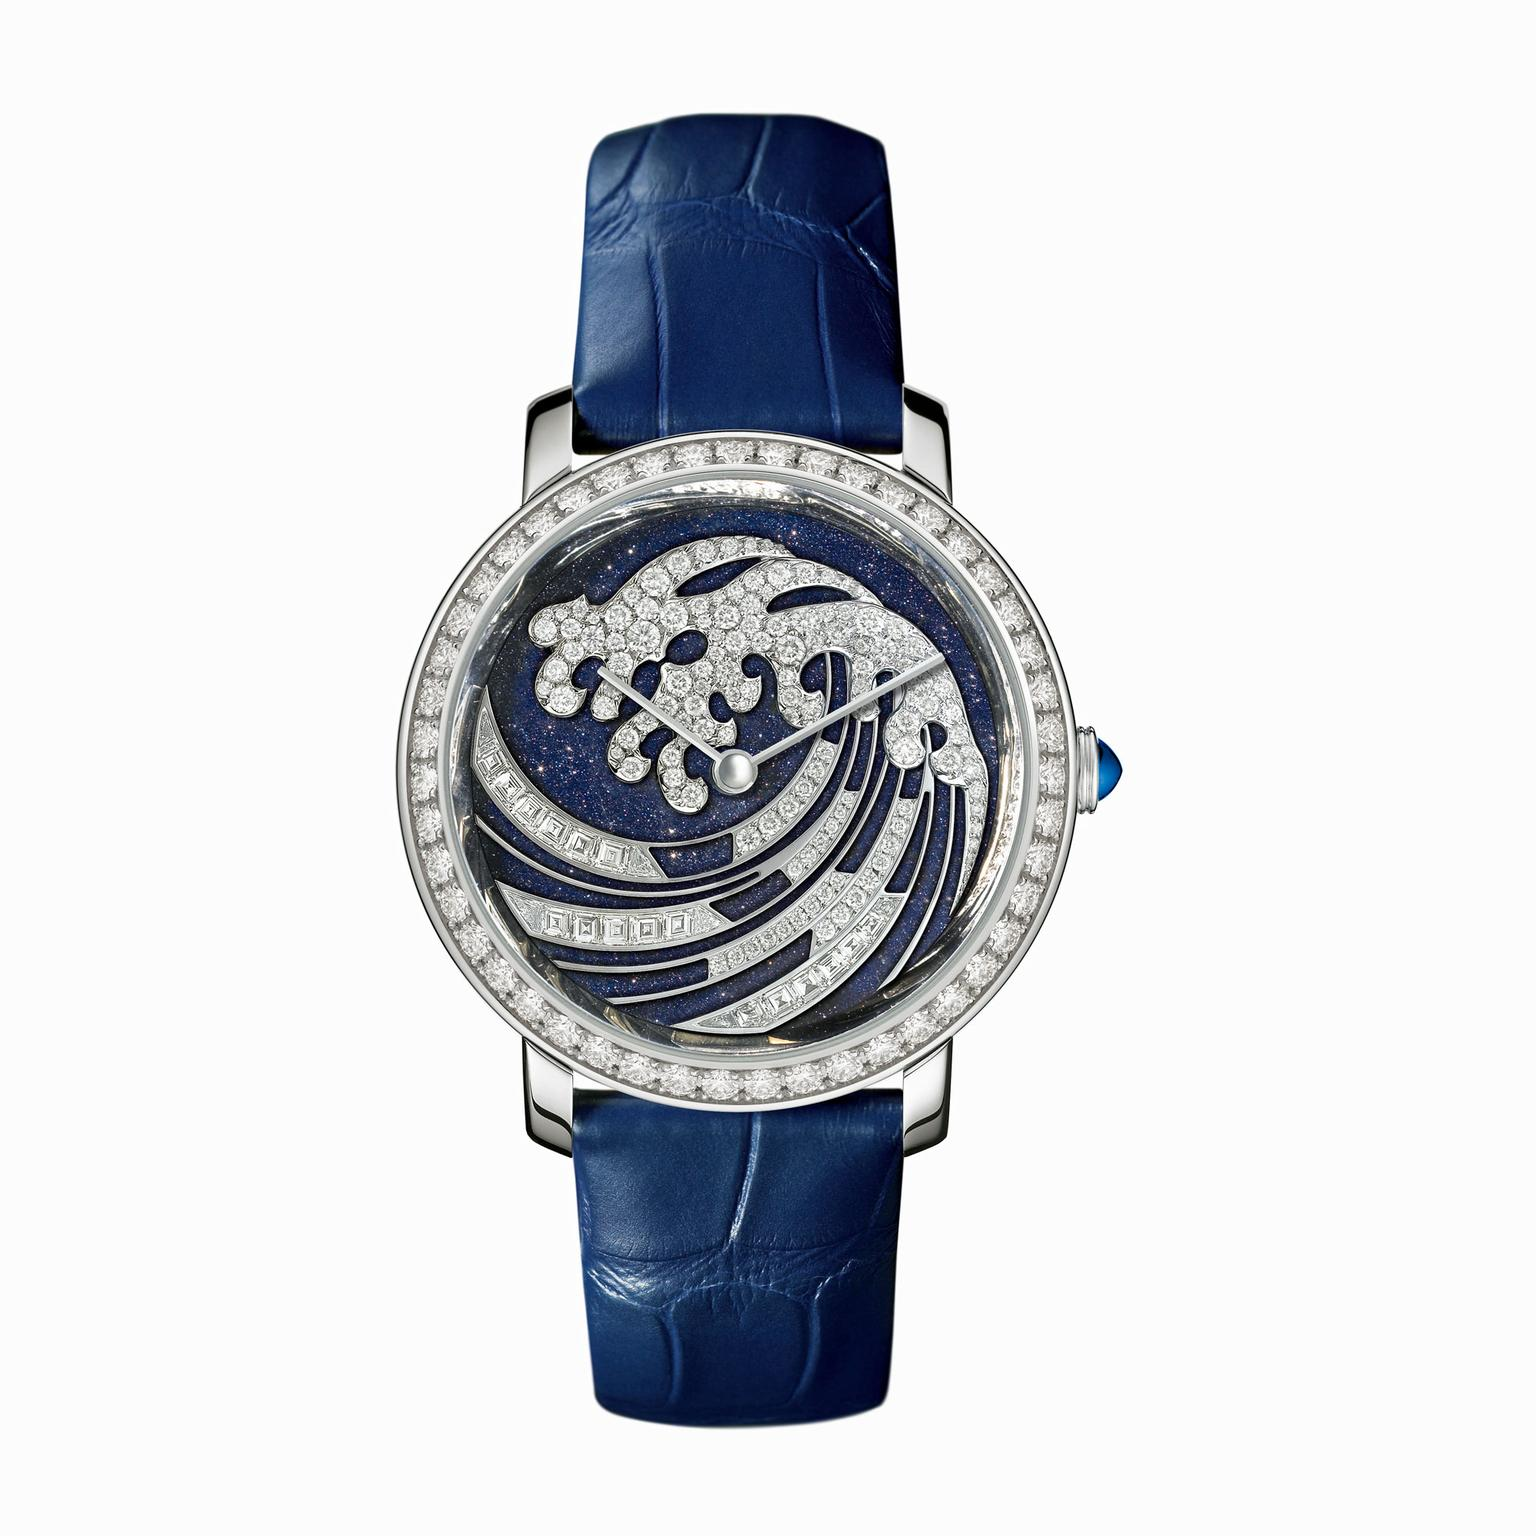 Boucheron Vague de Lumiere watch